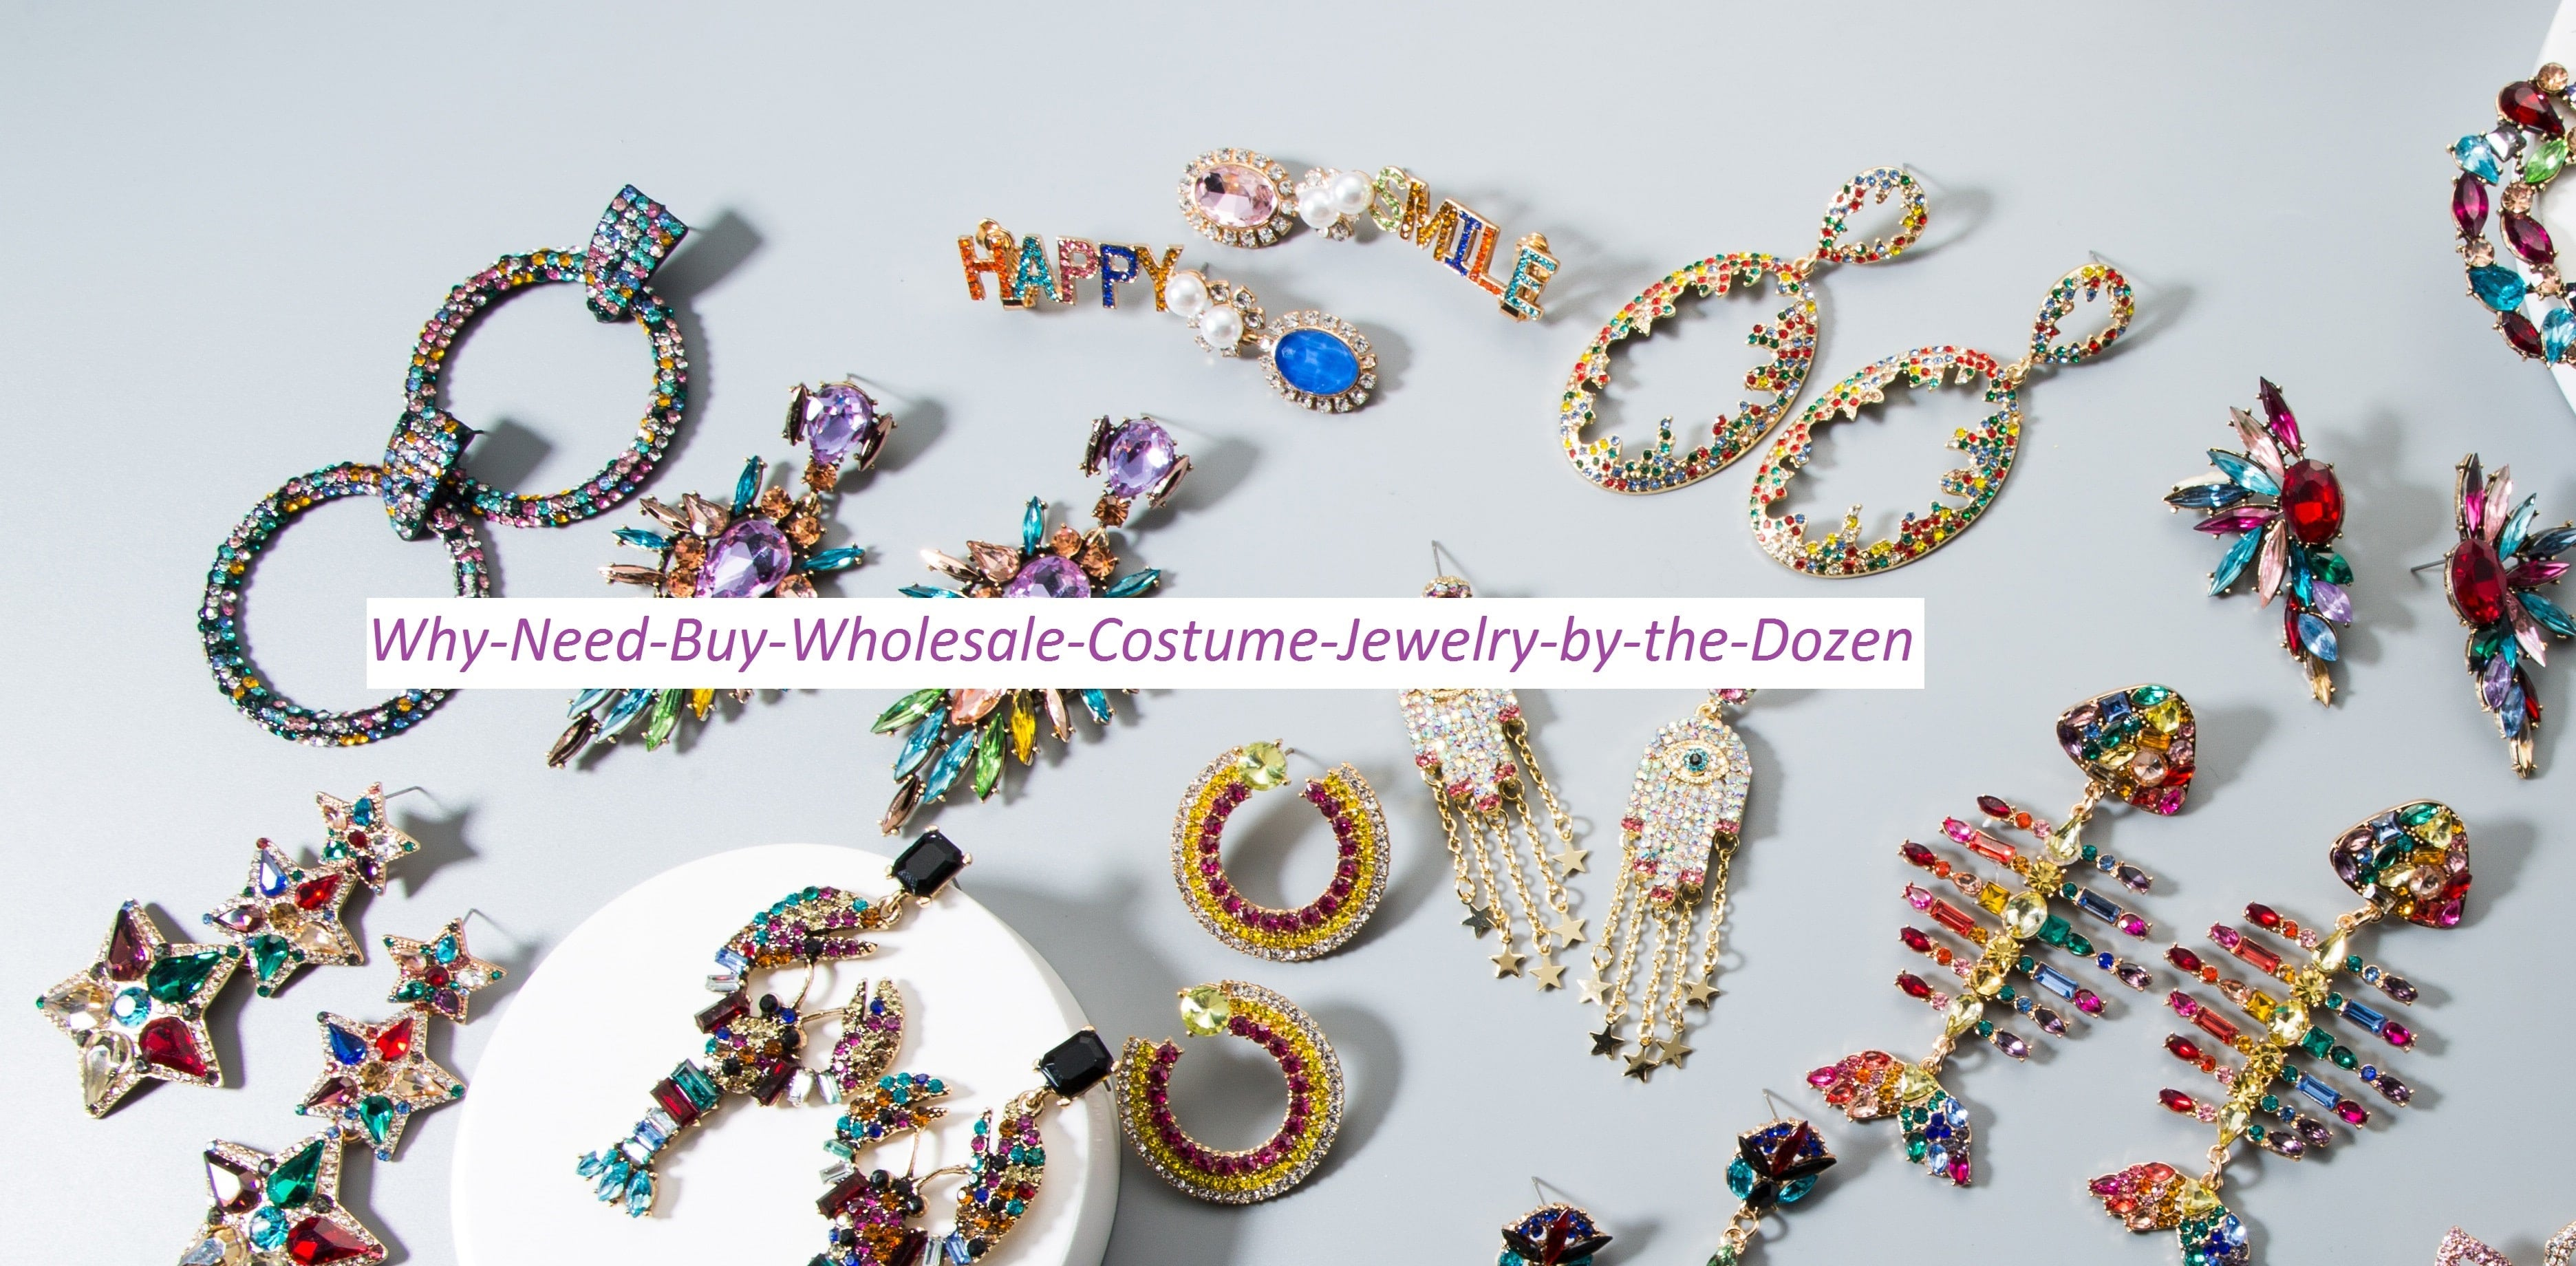 Why-Need-Buy-Wholesale-Costume-Jewelry-by-the-Dozen